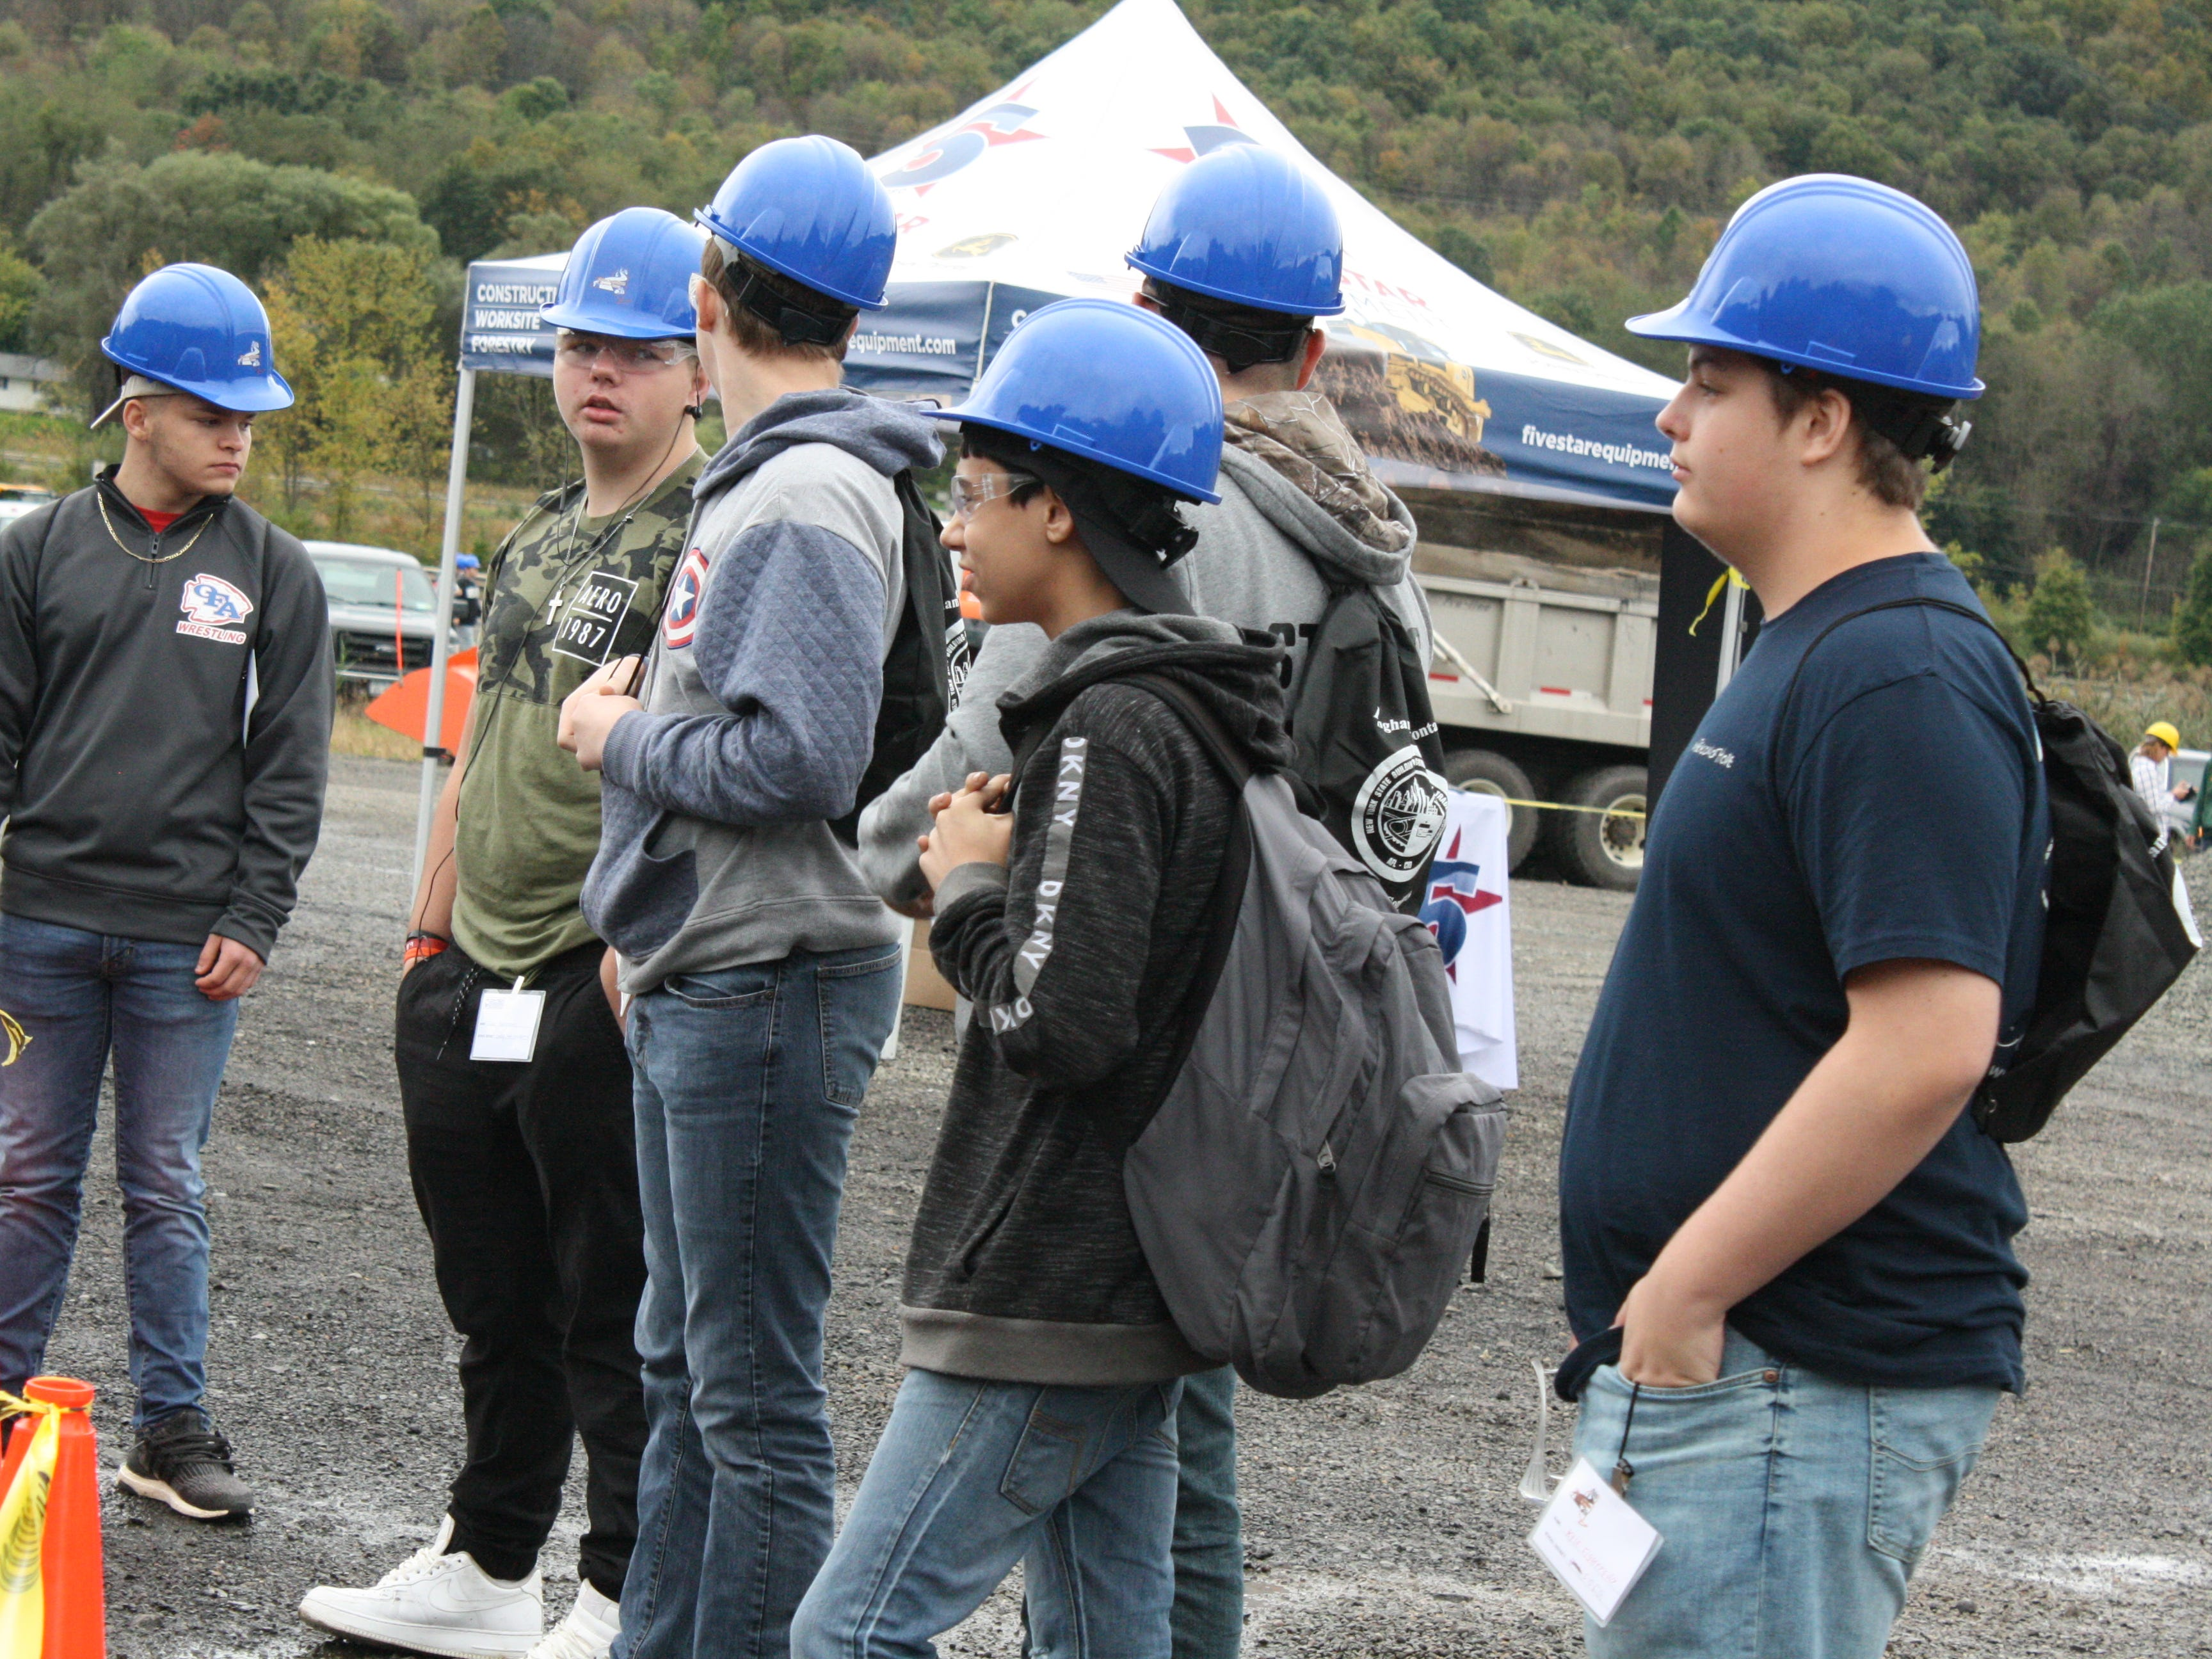 The annual Construction & Technology Career Day was held at the Broome County Highway Department in Chenango Bridge Wednesday morning.